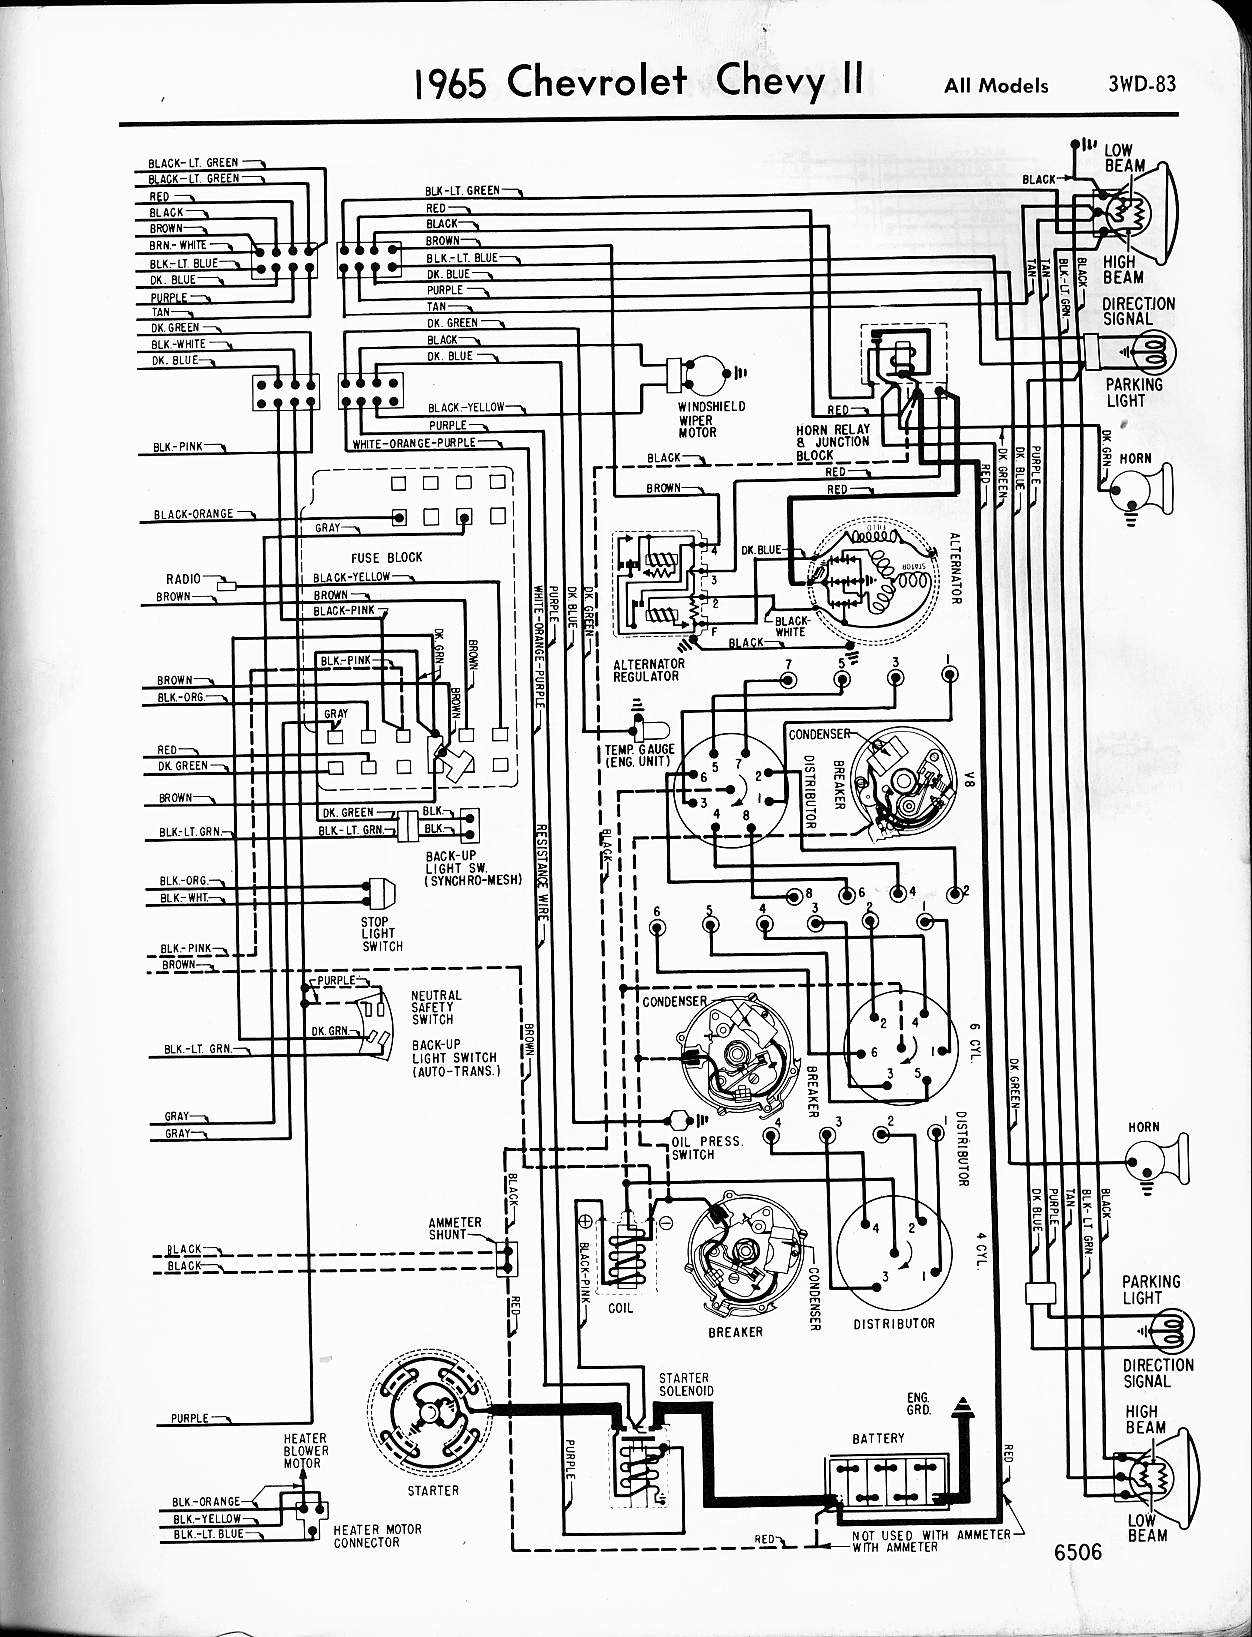 1965 chevelle fuse block diagram wiring diagram detailed 1976 Pontiac LeMans 1965 chevelle fuse block diagram manual e books fuse box diagram 1965 chevelle fuse block diagram